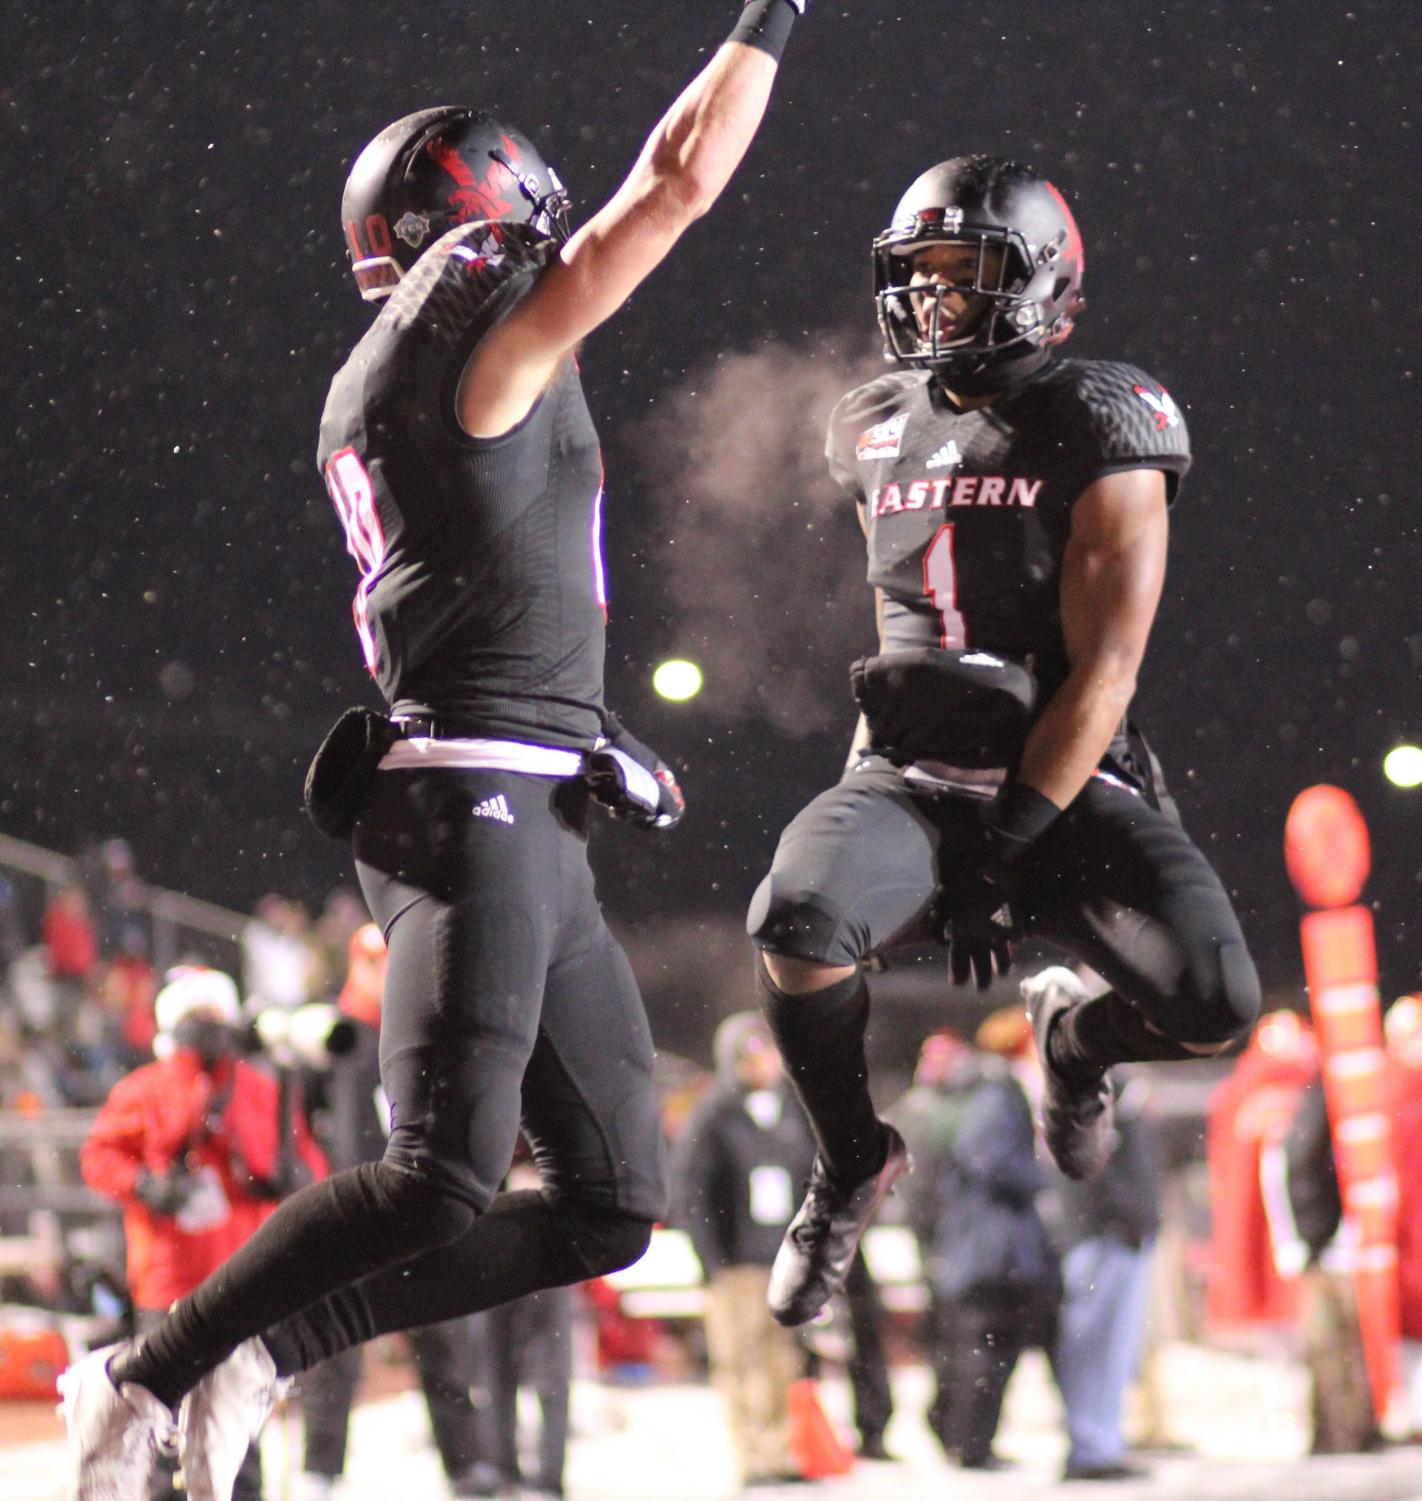 Cooper Kupp and Shaq Hill celebrate a touchdown in the 2016 semifinal against Youngstown State. EWU ultimately lost the game when the Penguins scored a last second touchdown.